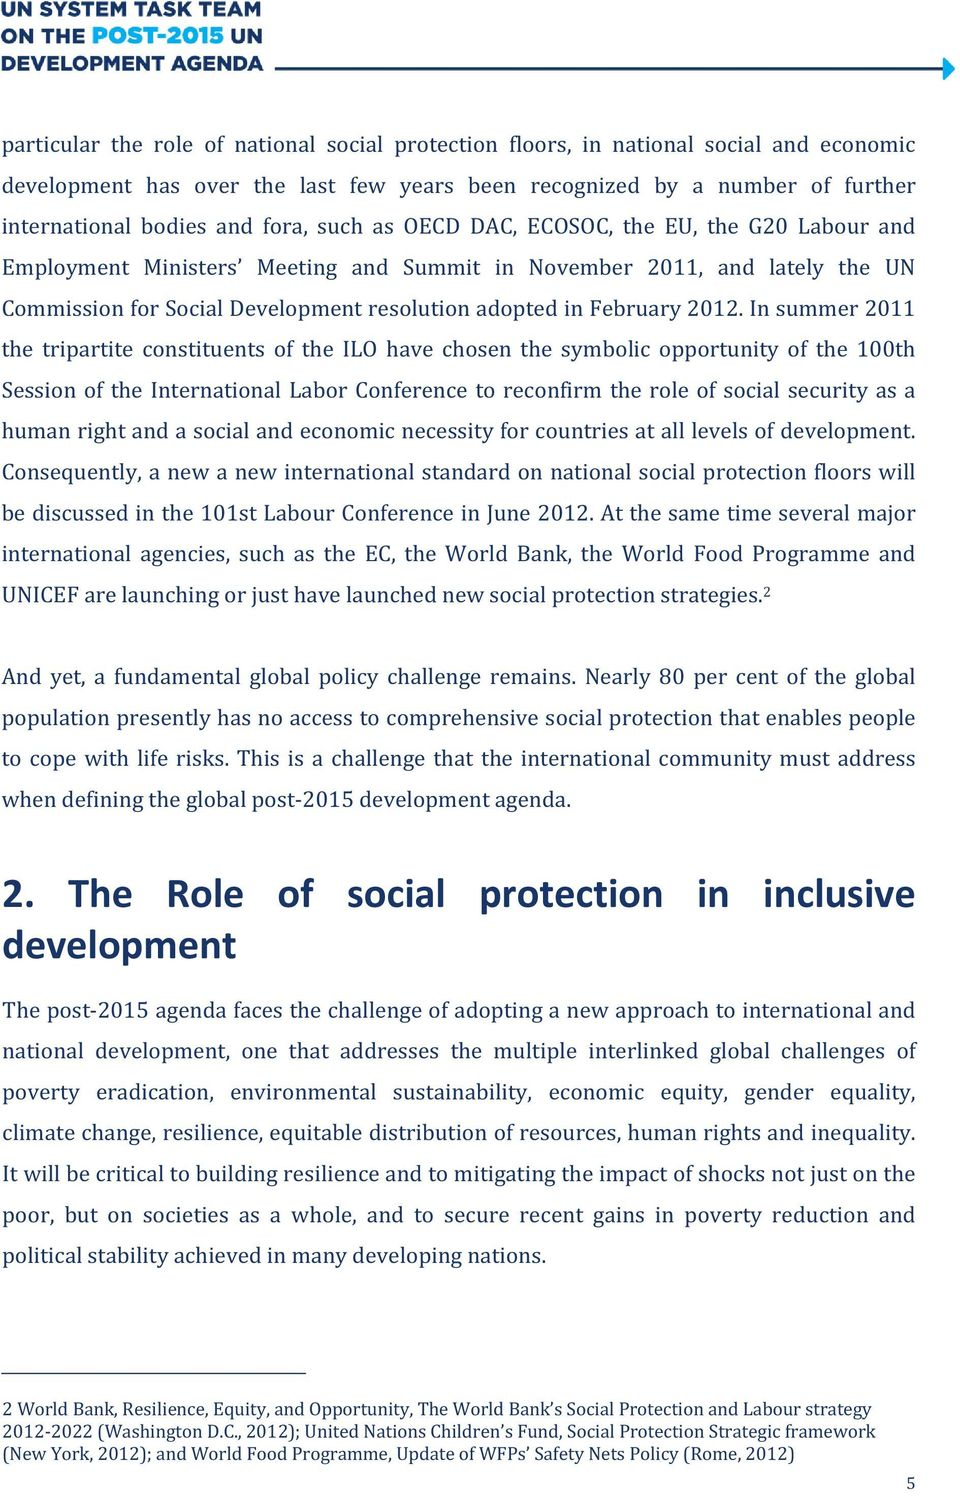 In summer 2011 the tripartite constituents of the ILO have chosen the symbolic opportunity of the 100th Session of the International Labor Conference to reconfirm the role of social security as a